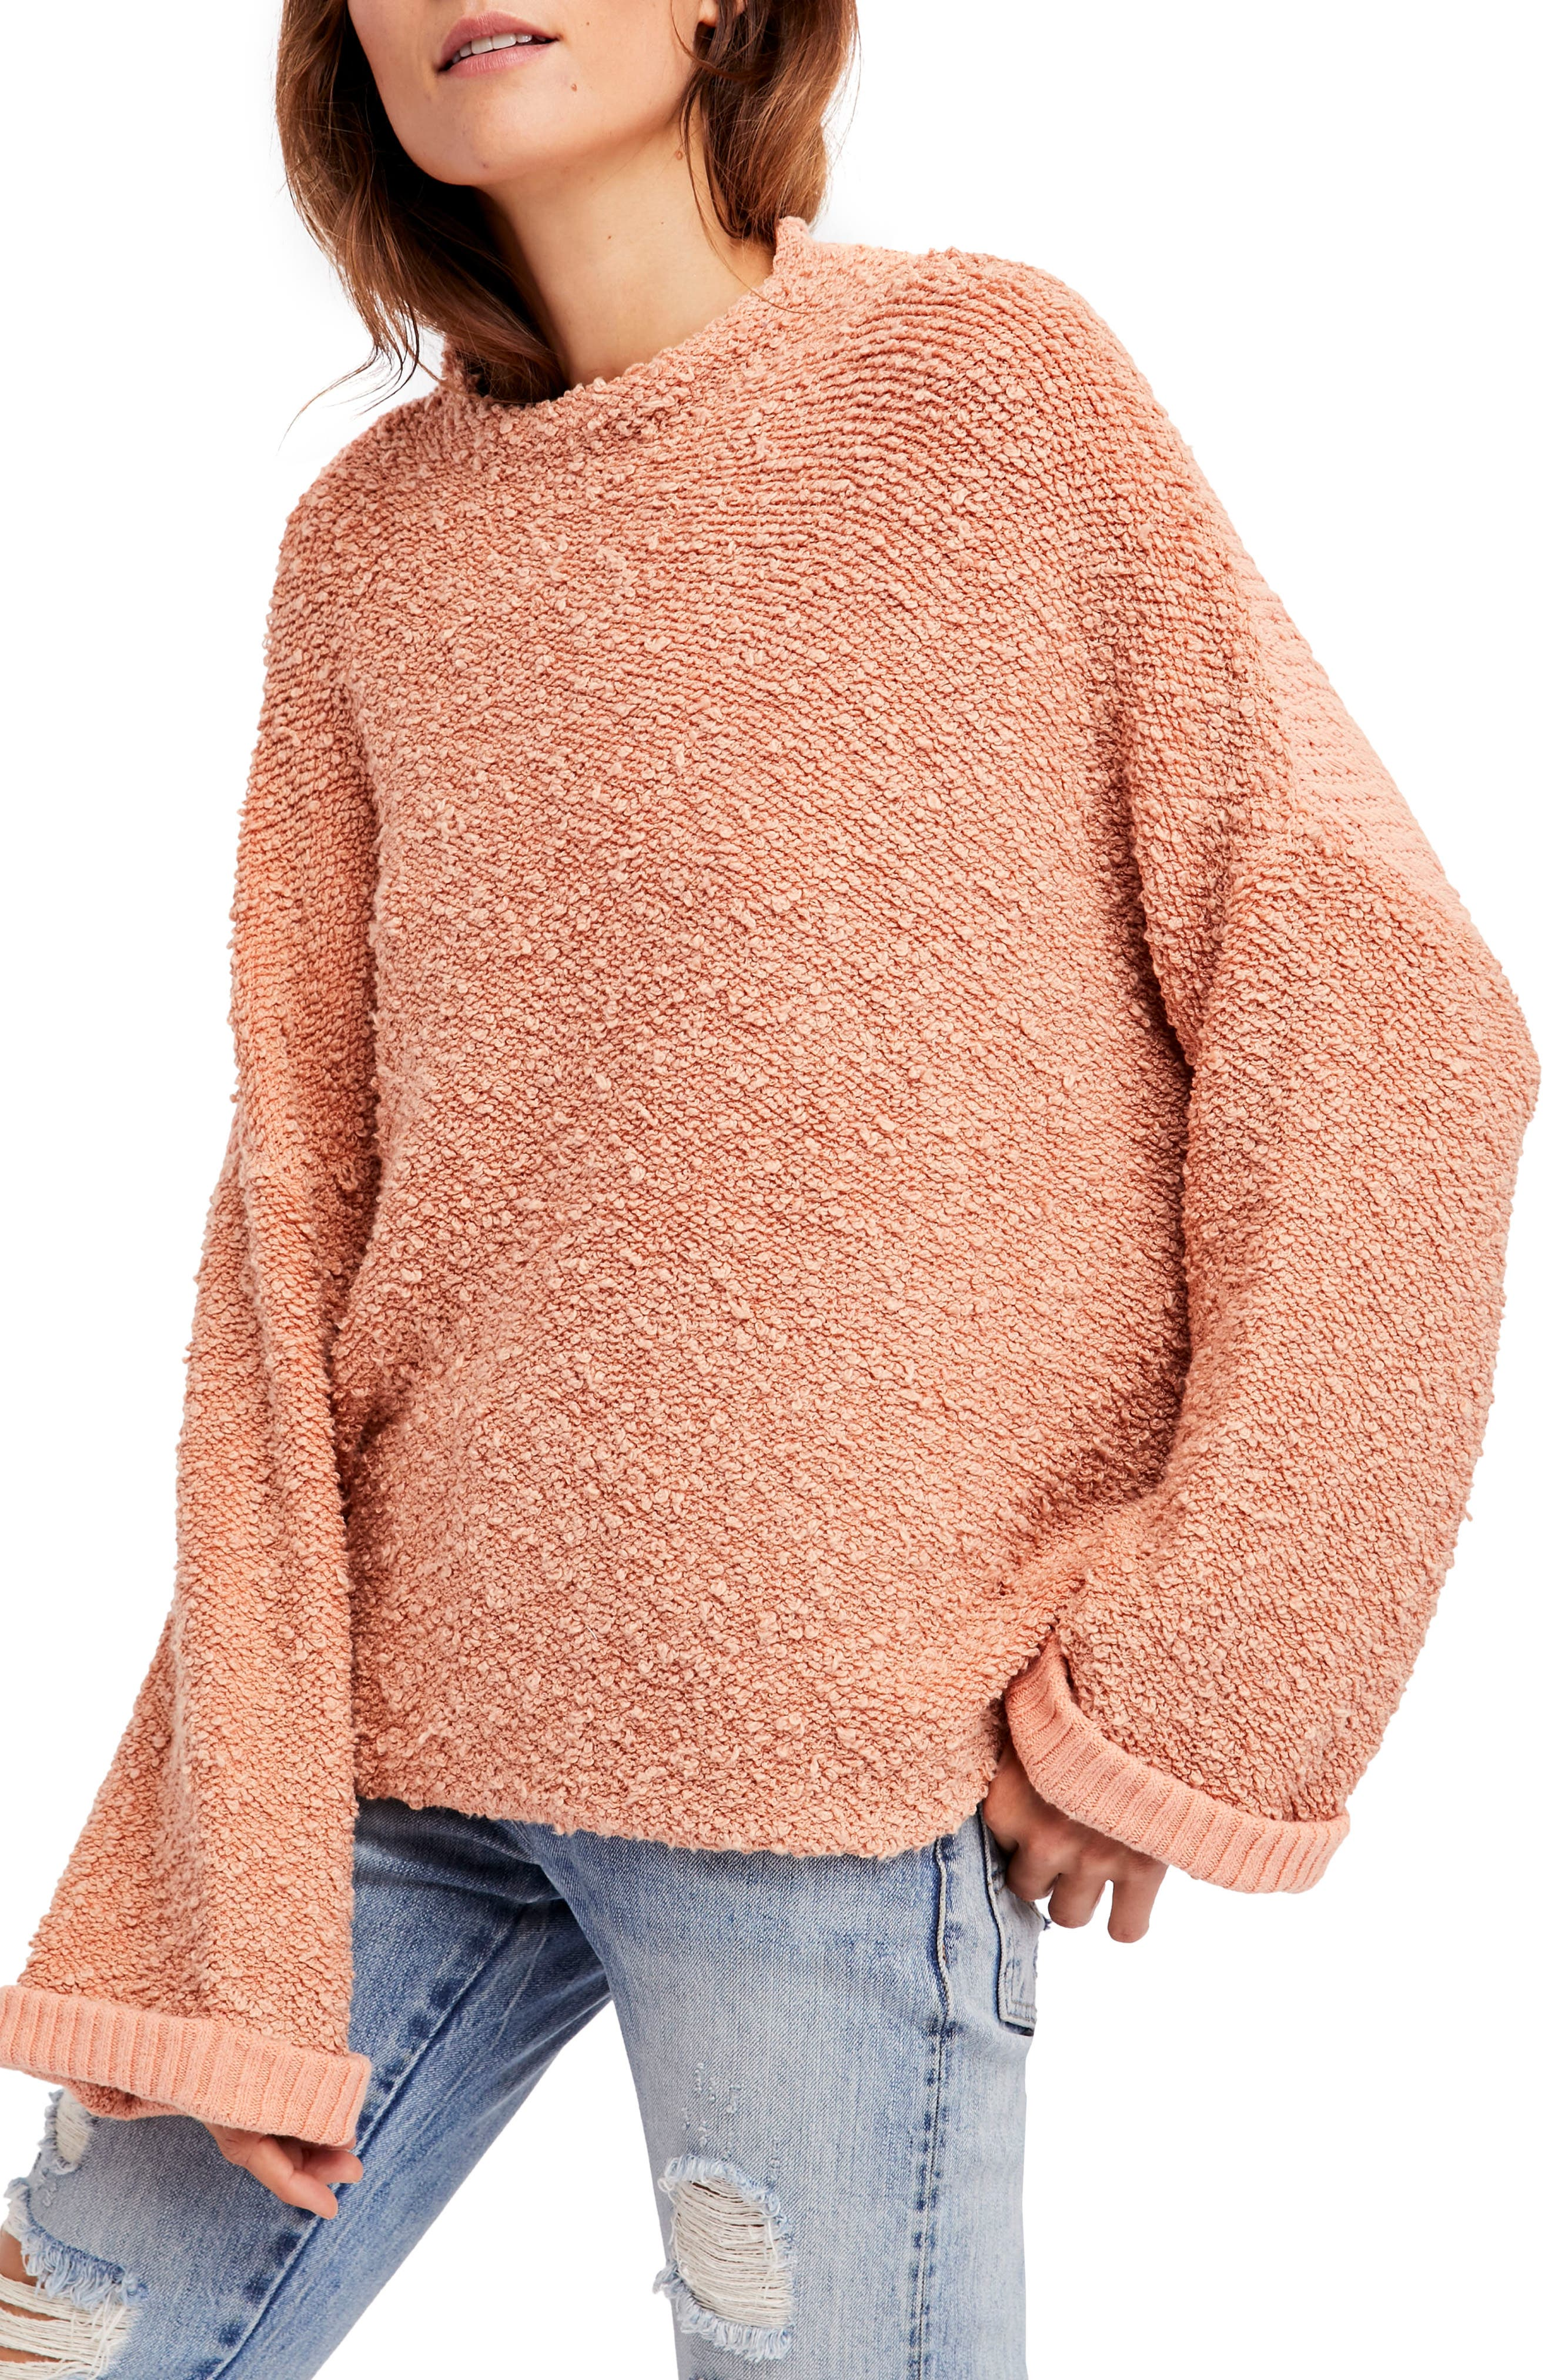 Free People Cuddle Up Pullover